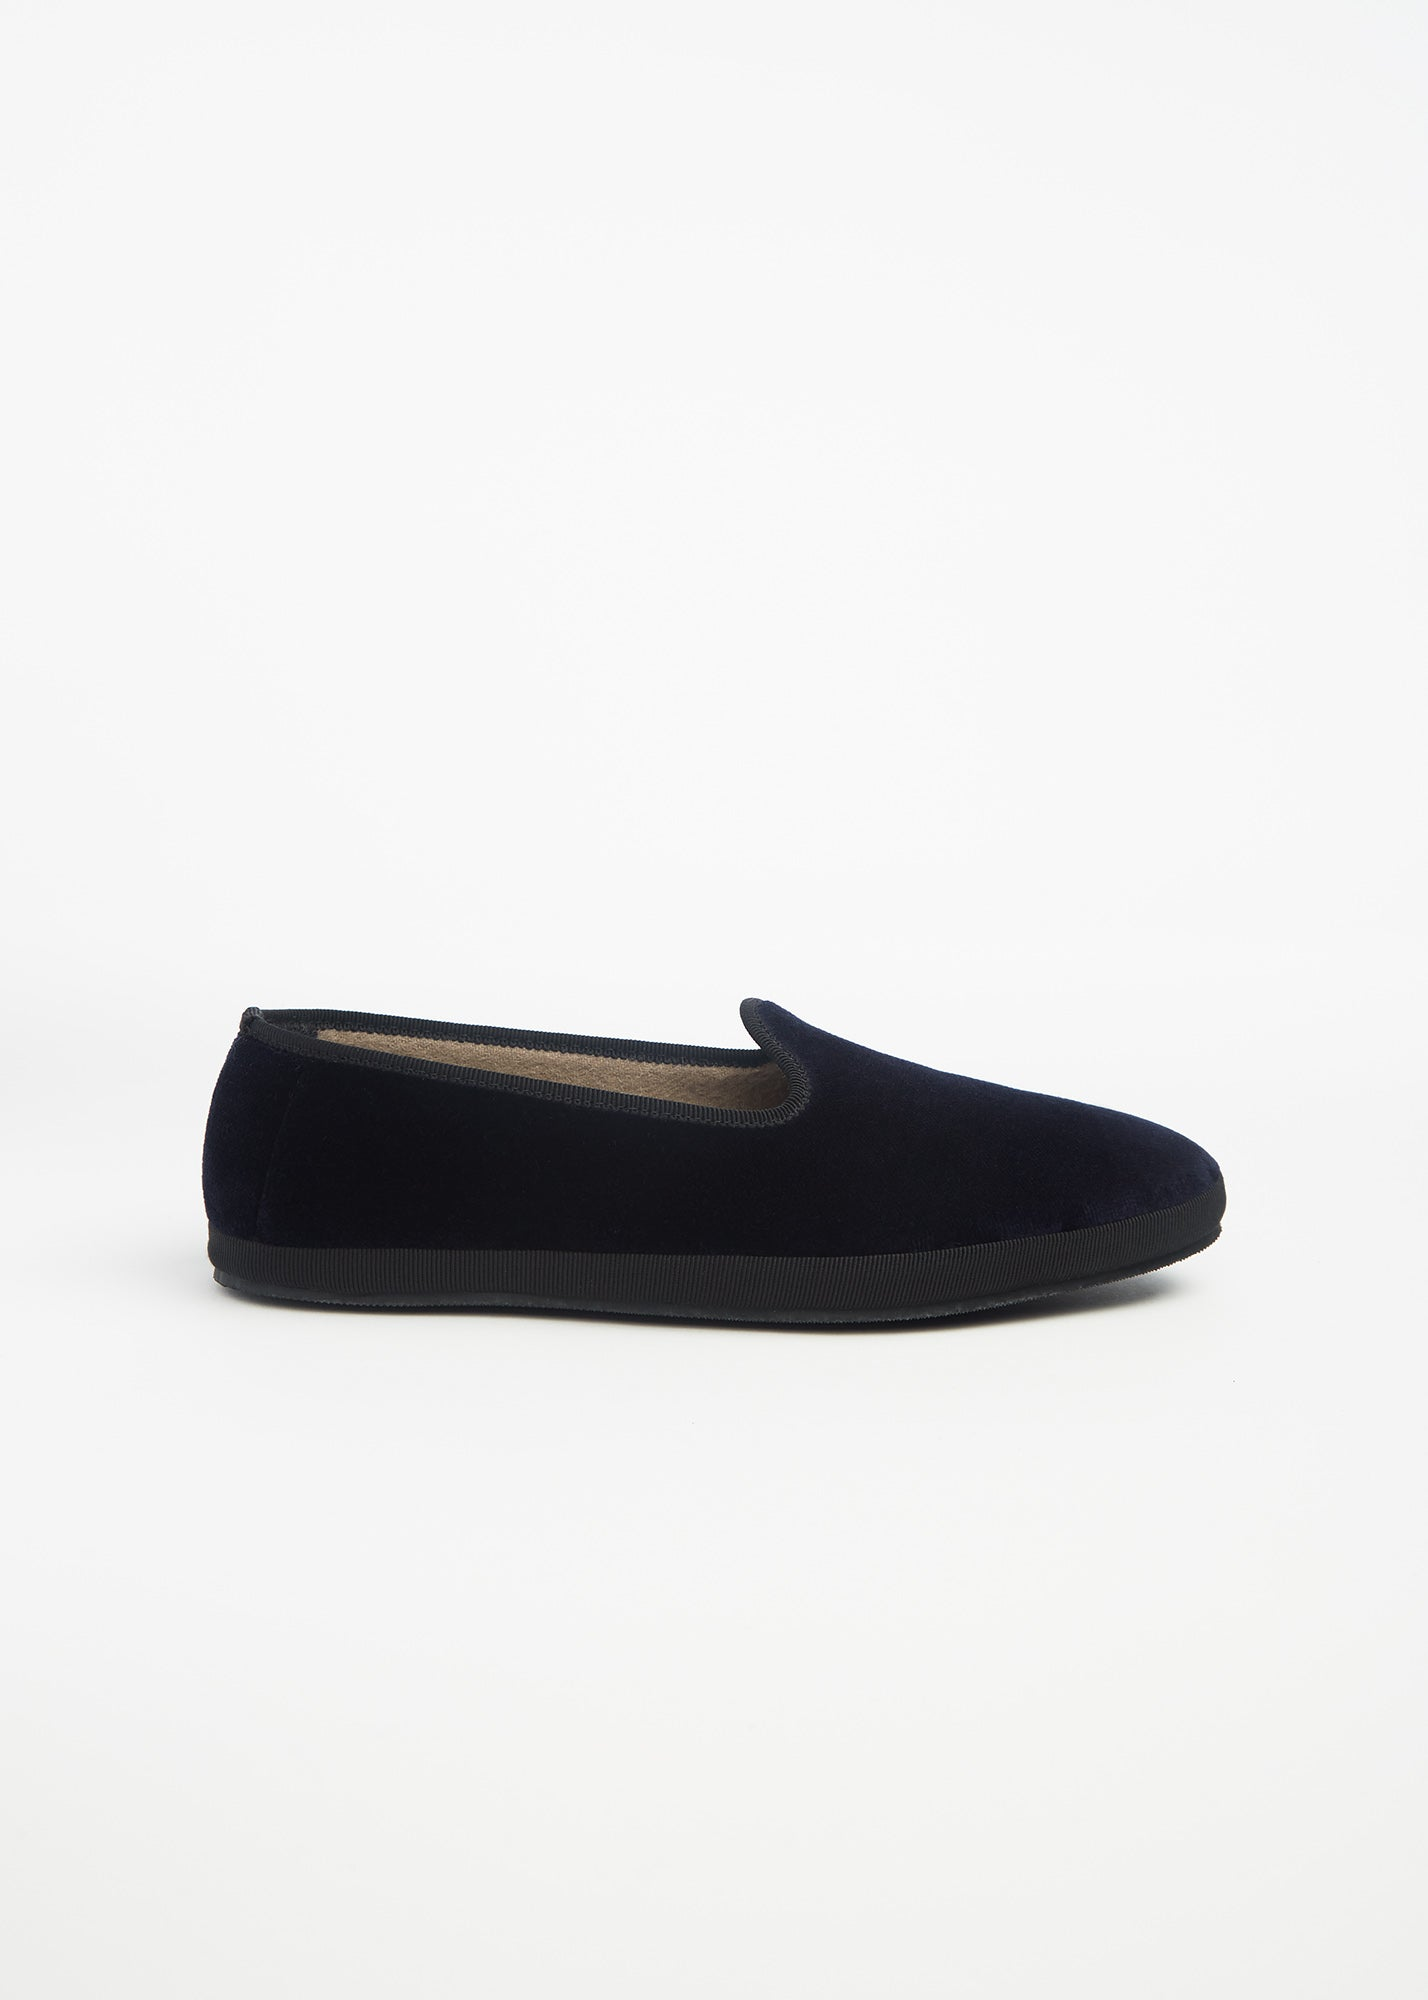 Velvet Slippers Navy Blue